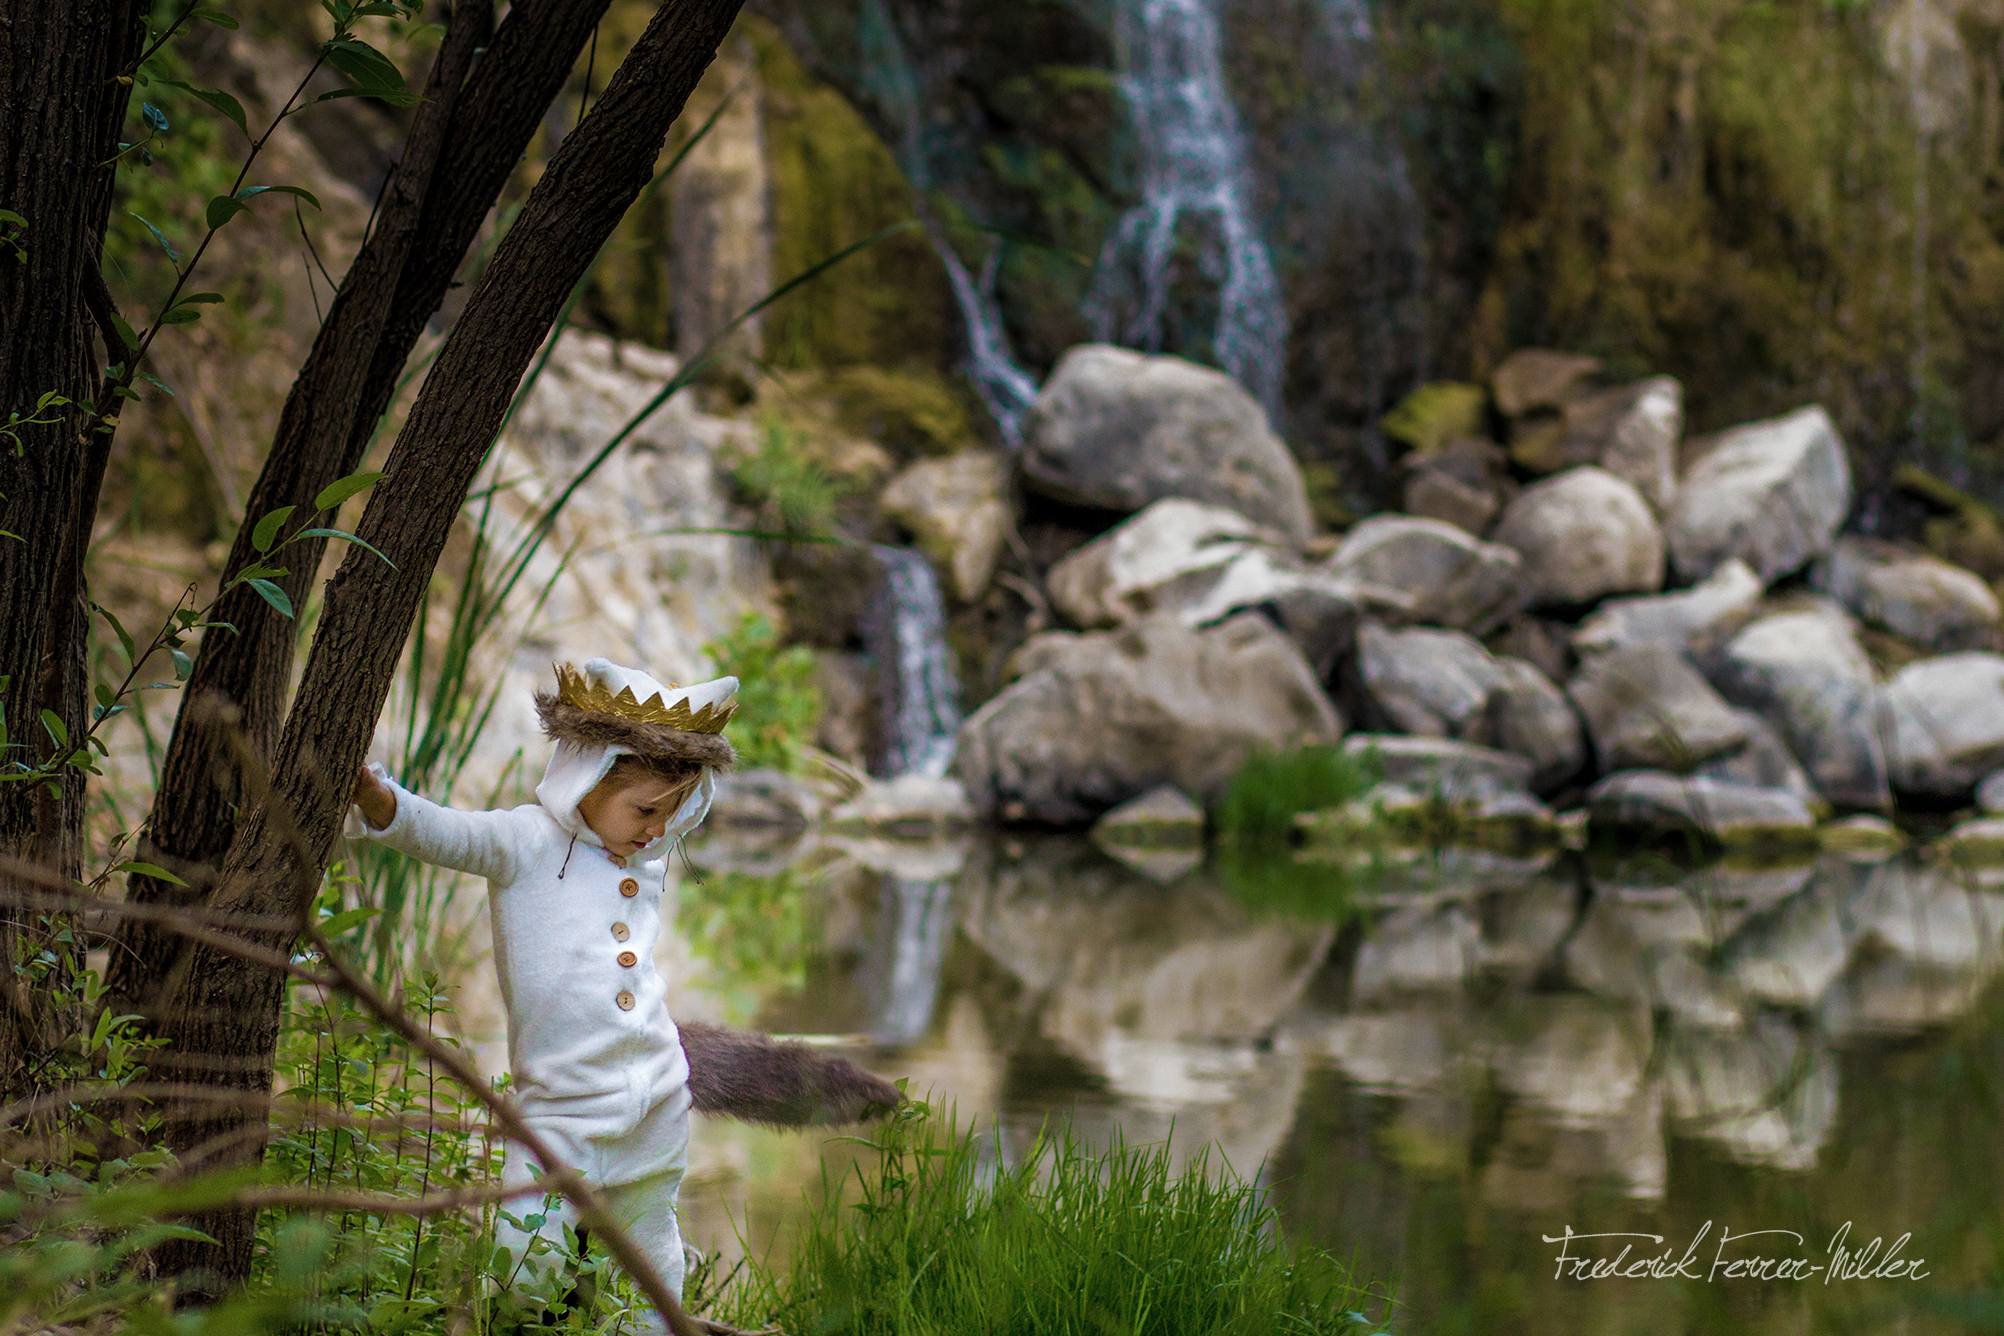 Where the Wild Things Are Theme